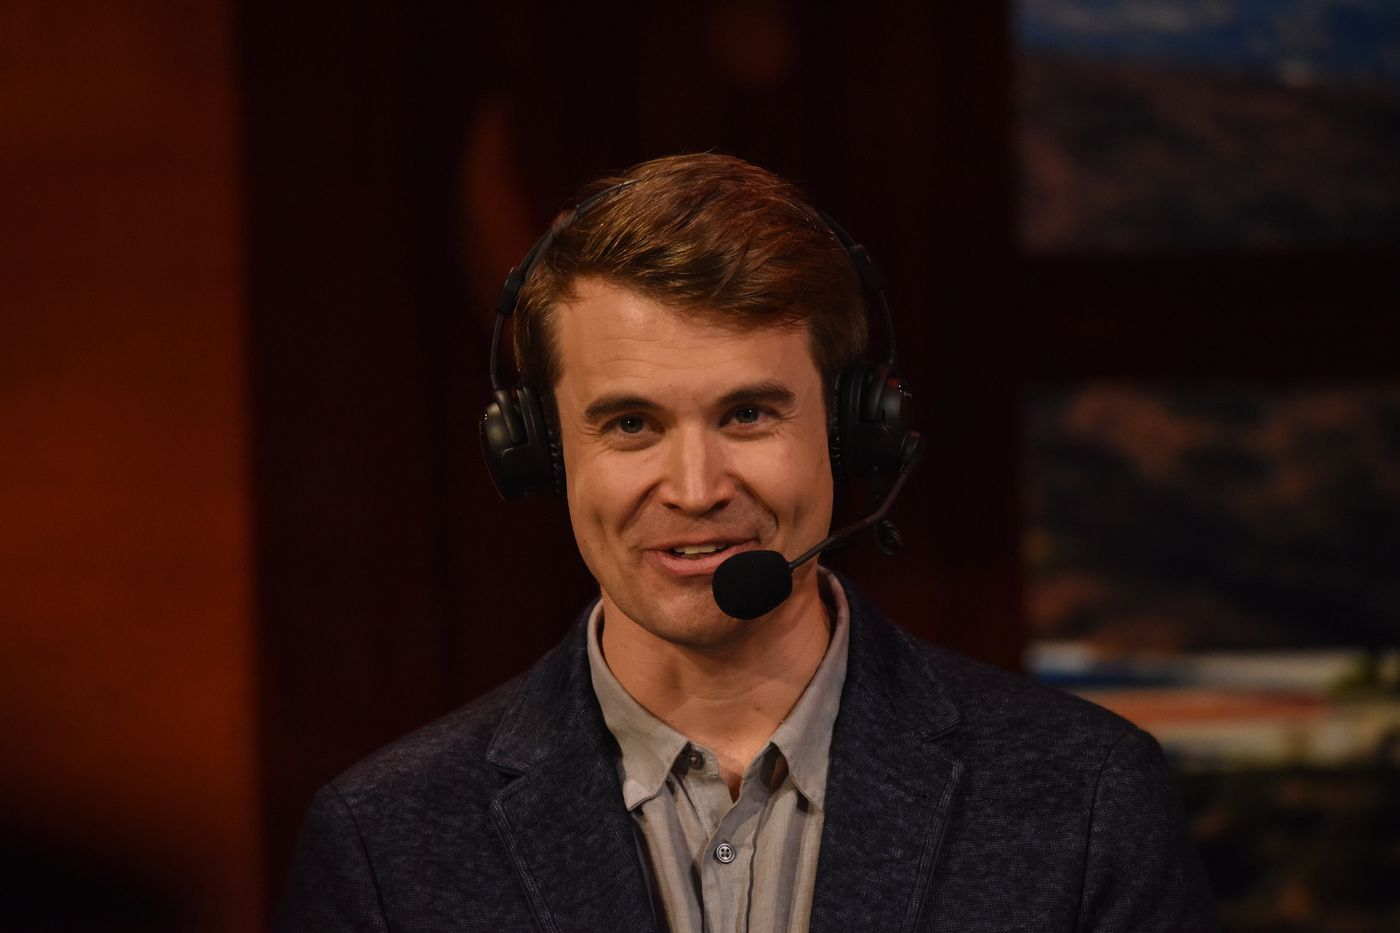 Hearthstone streamer Brian Kibler resigns from BlizzCon casting in light of Blitzchung controversy